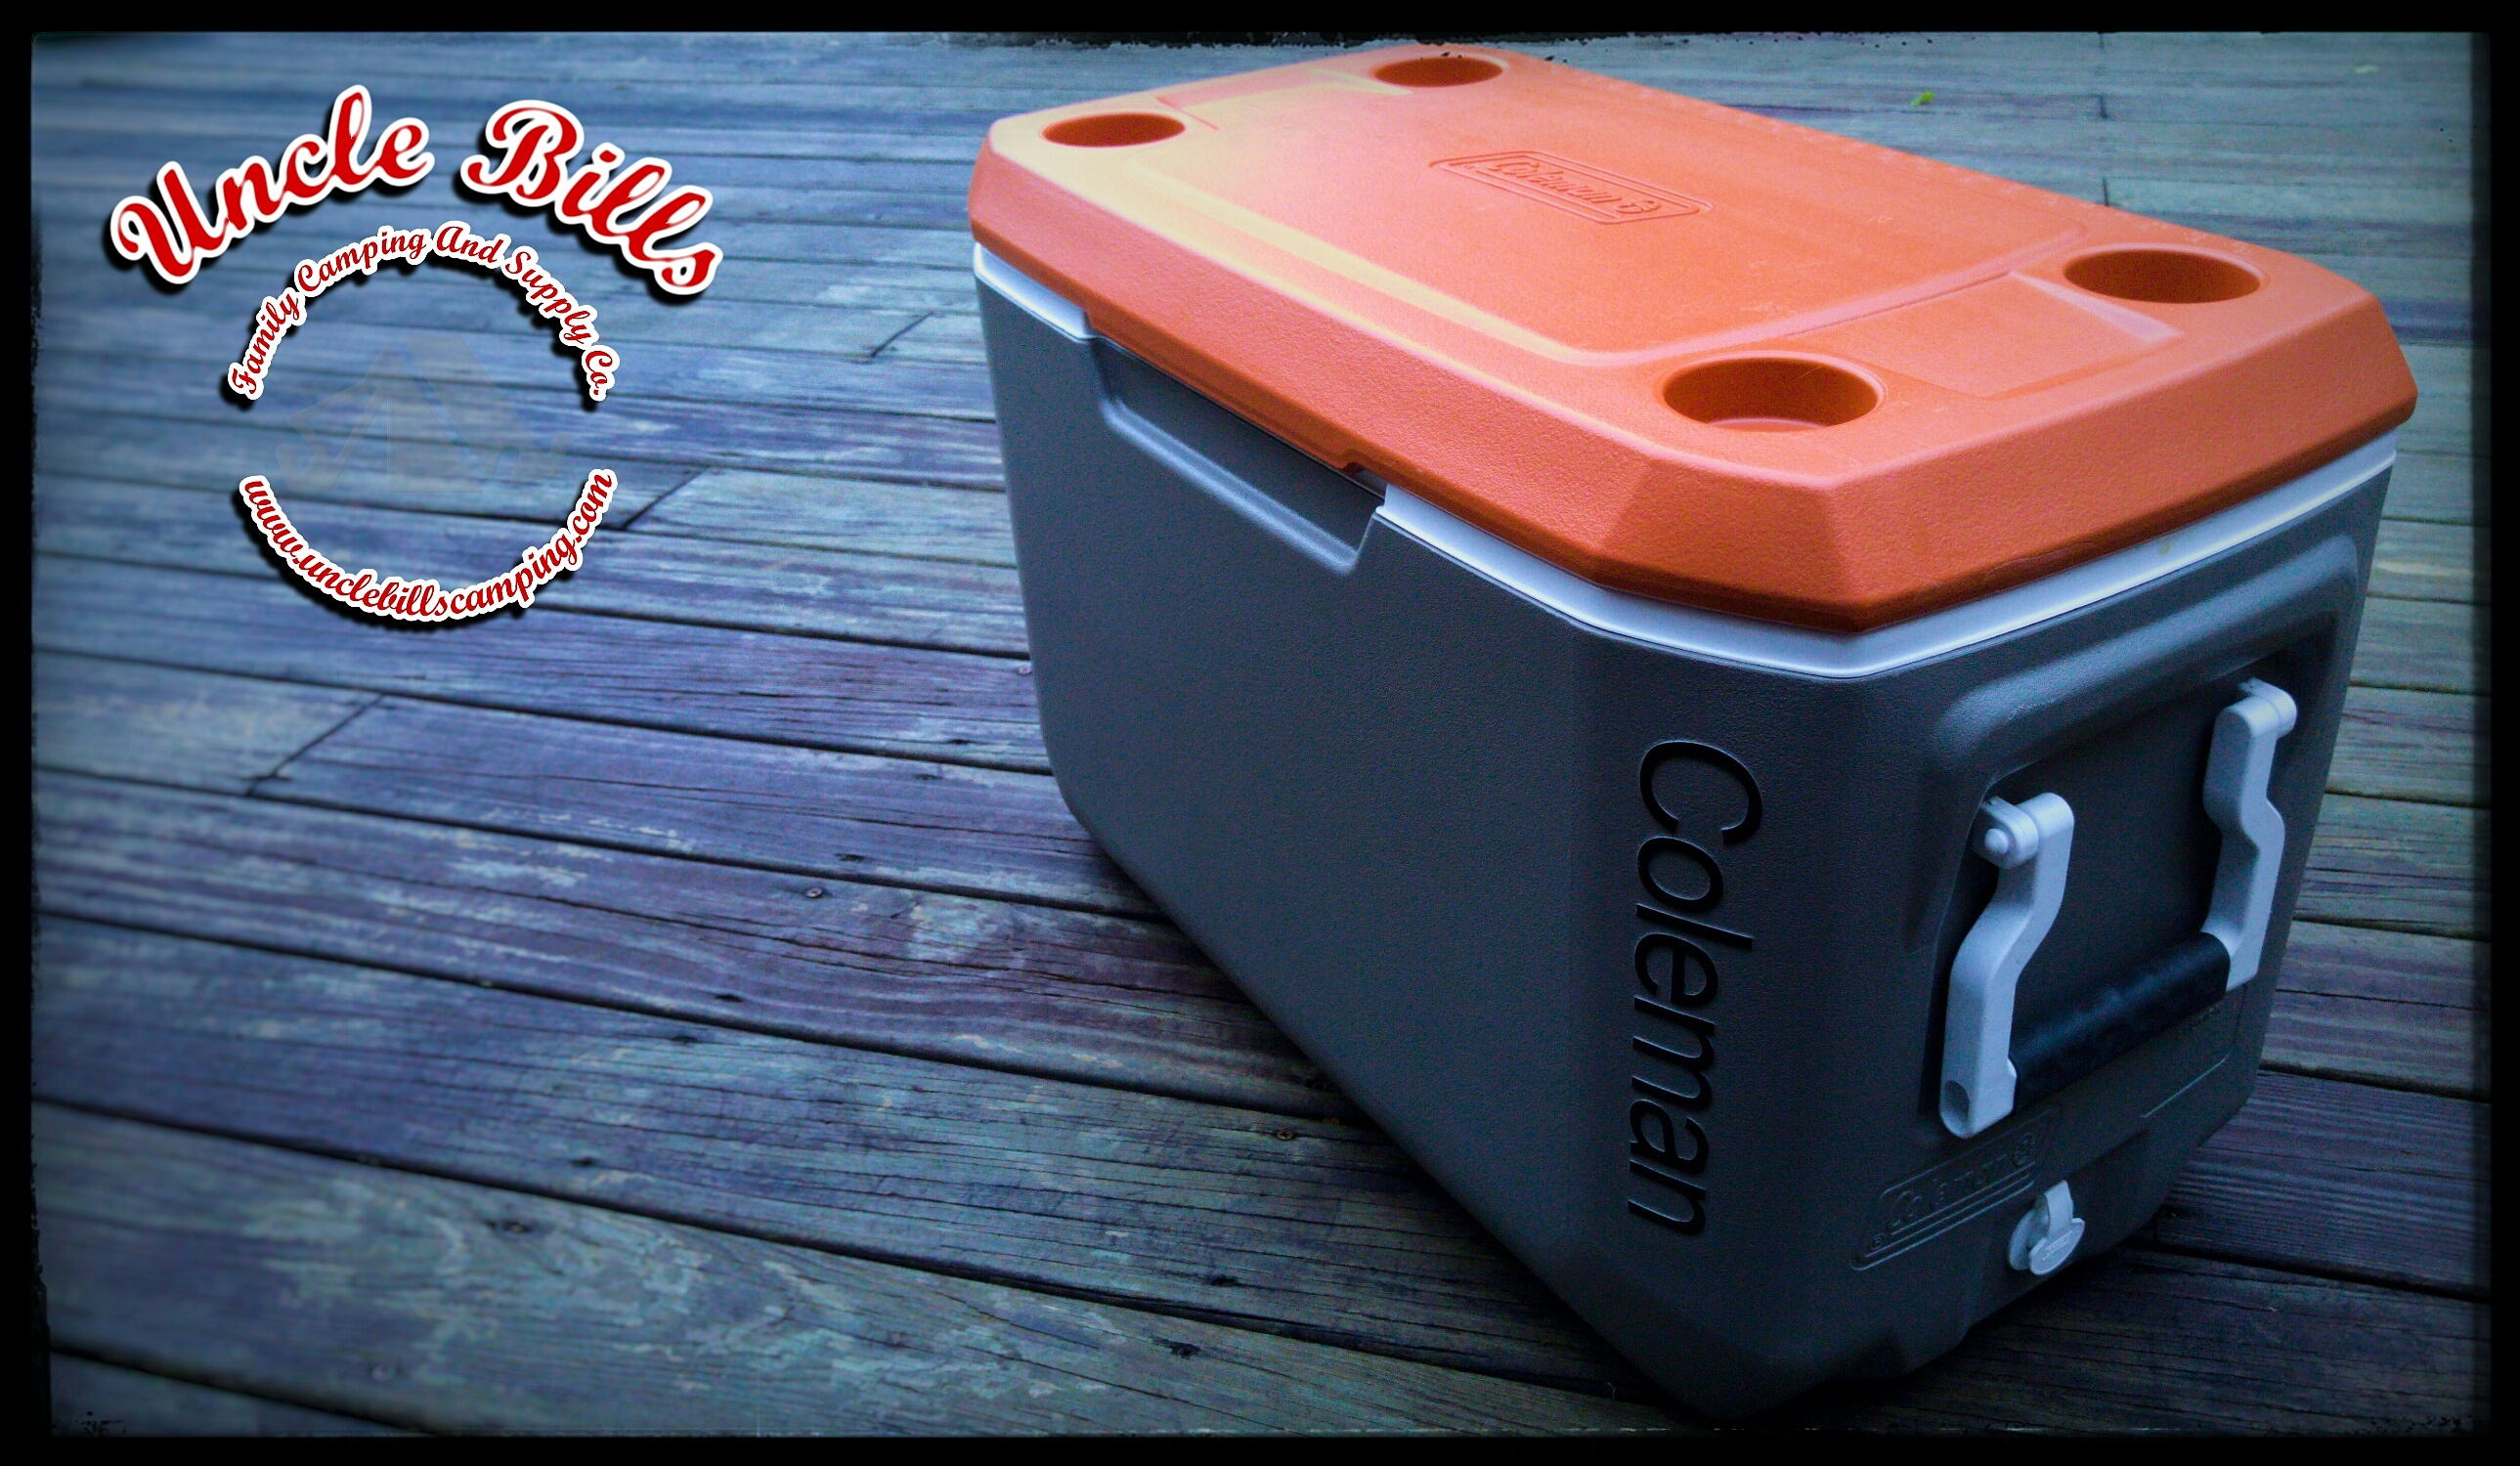 COLEMAN FIVE DAY COOLER